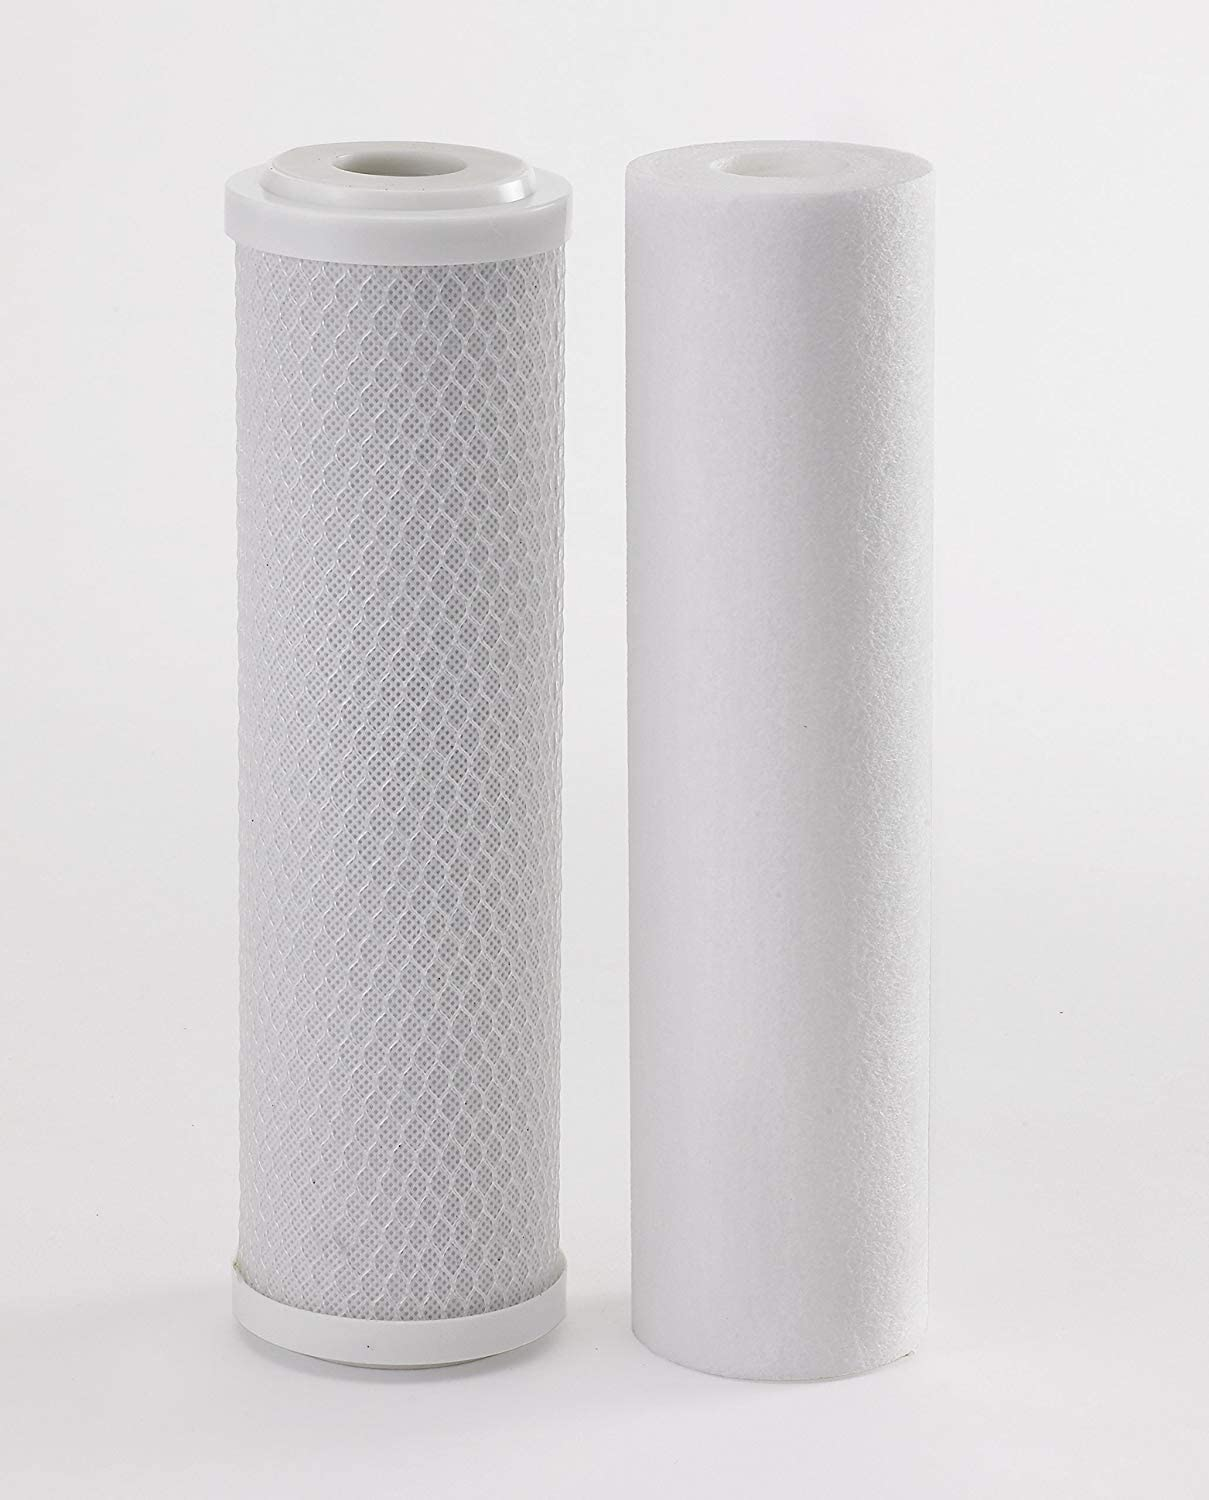 compatible filters for Clearsource Premium Syste Filter Water 1 year warranty RV New products, world's highest quality popular!